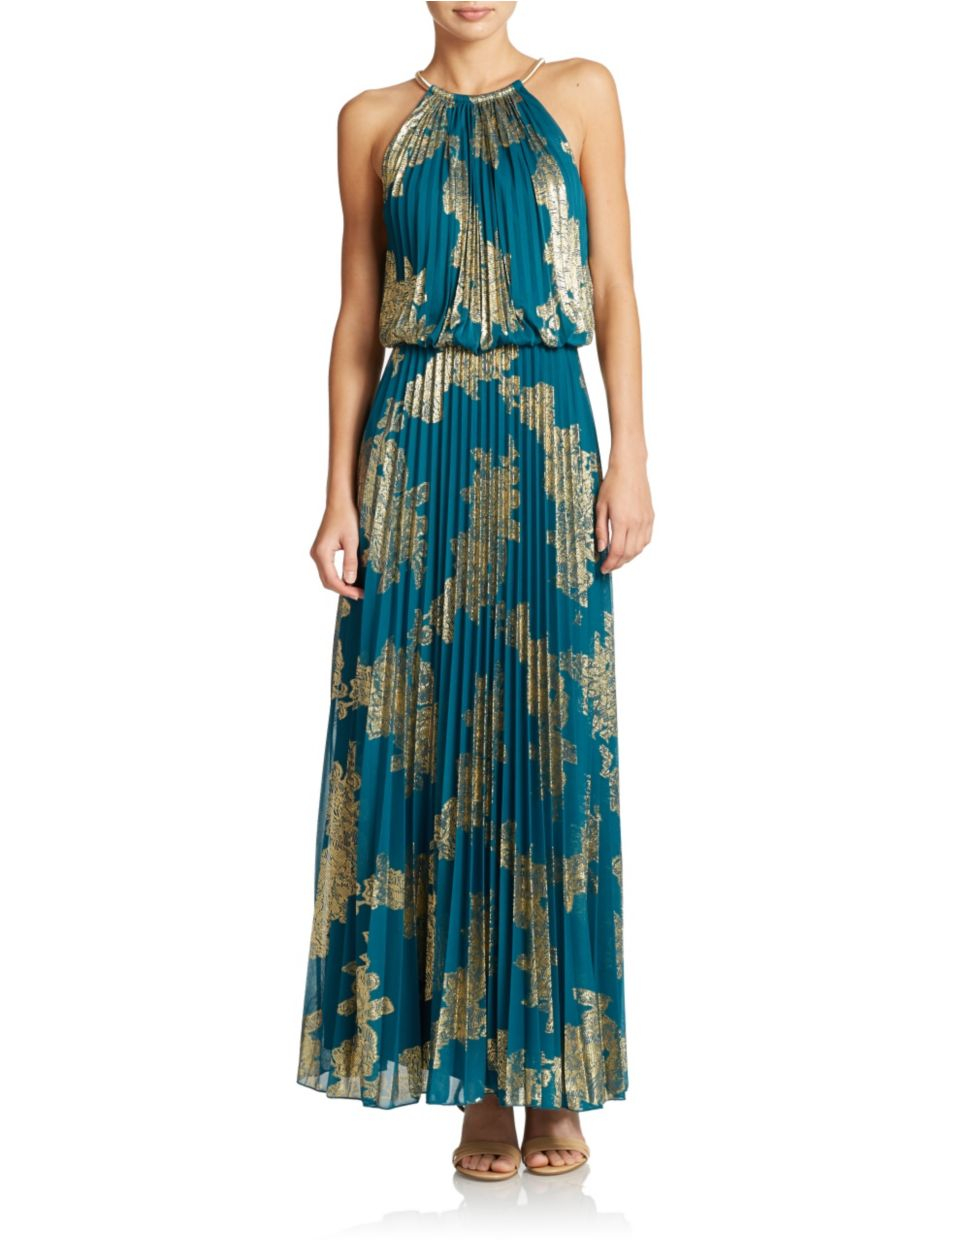 Lyst - Xscape Pleated Halter Top Gown in Green